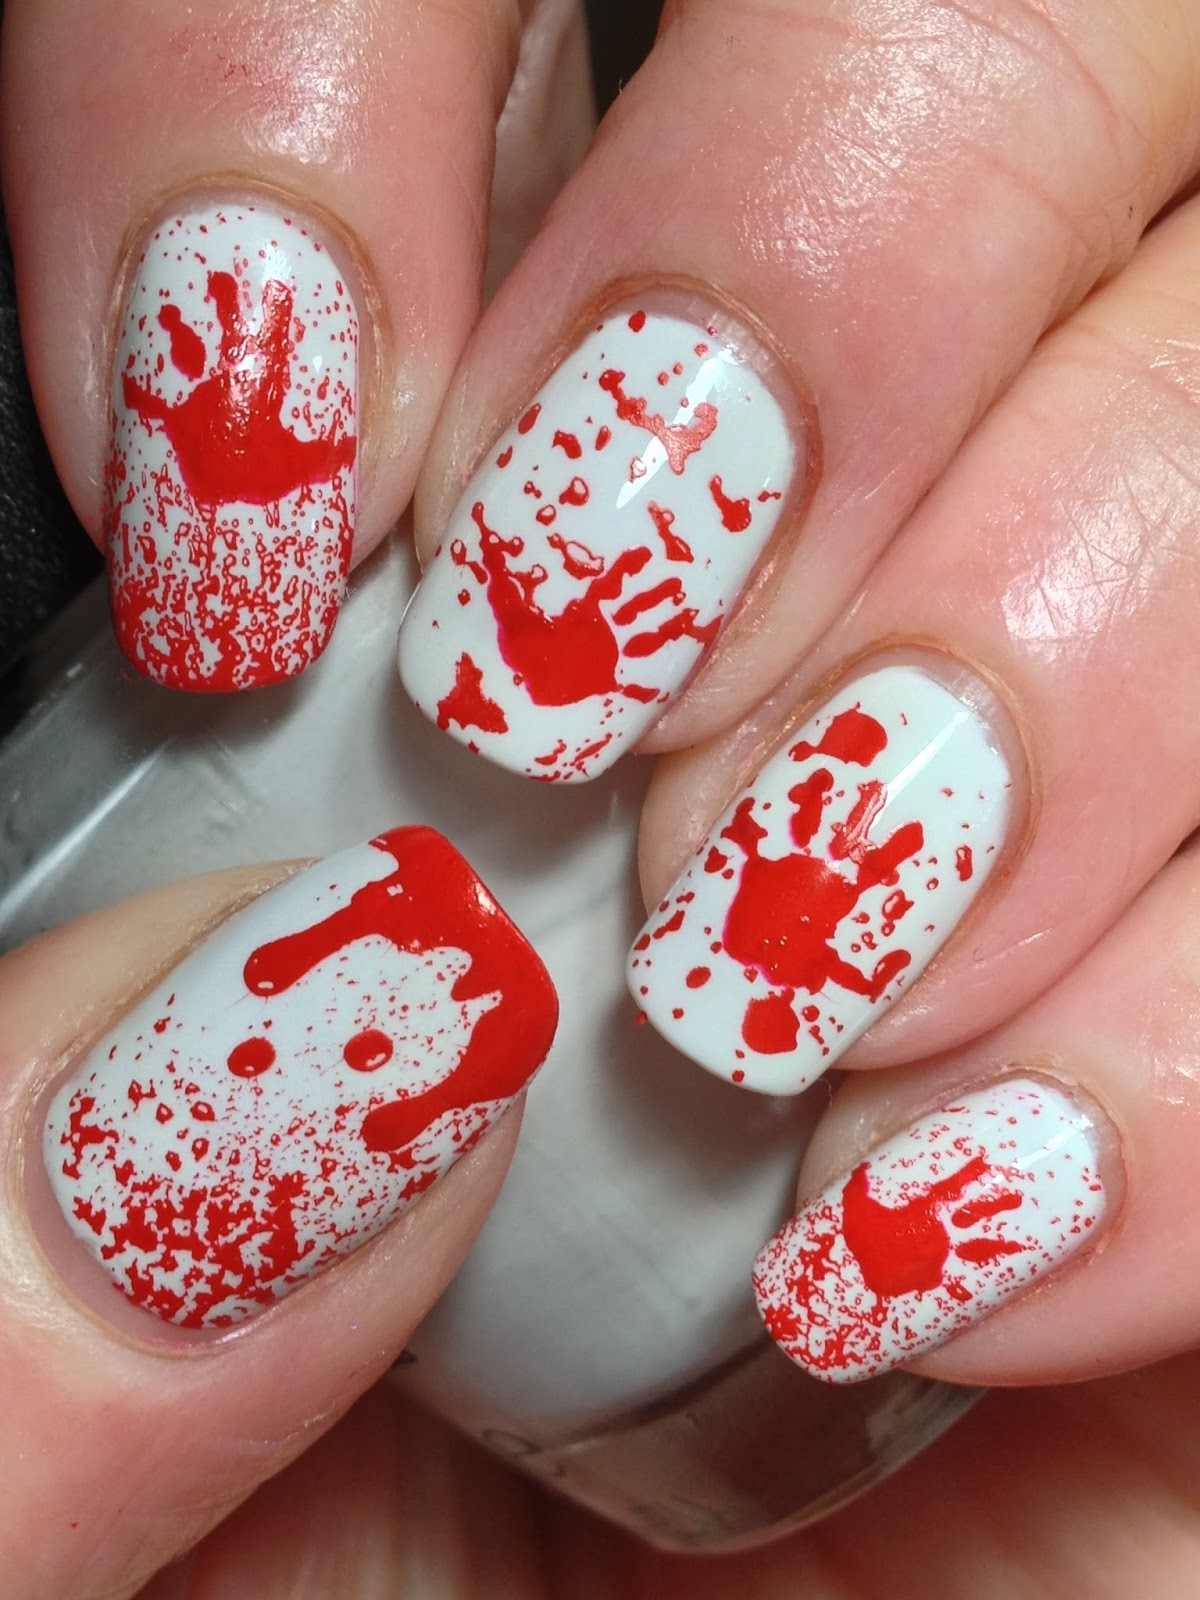 Canadian Nail Fanatic: Halloween Bloody Hands